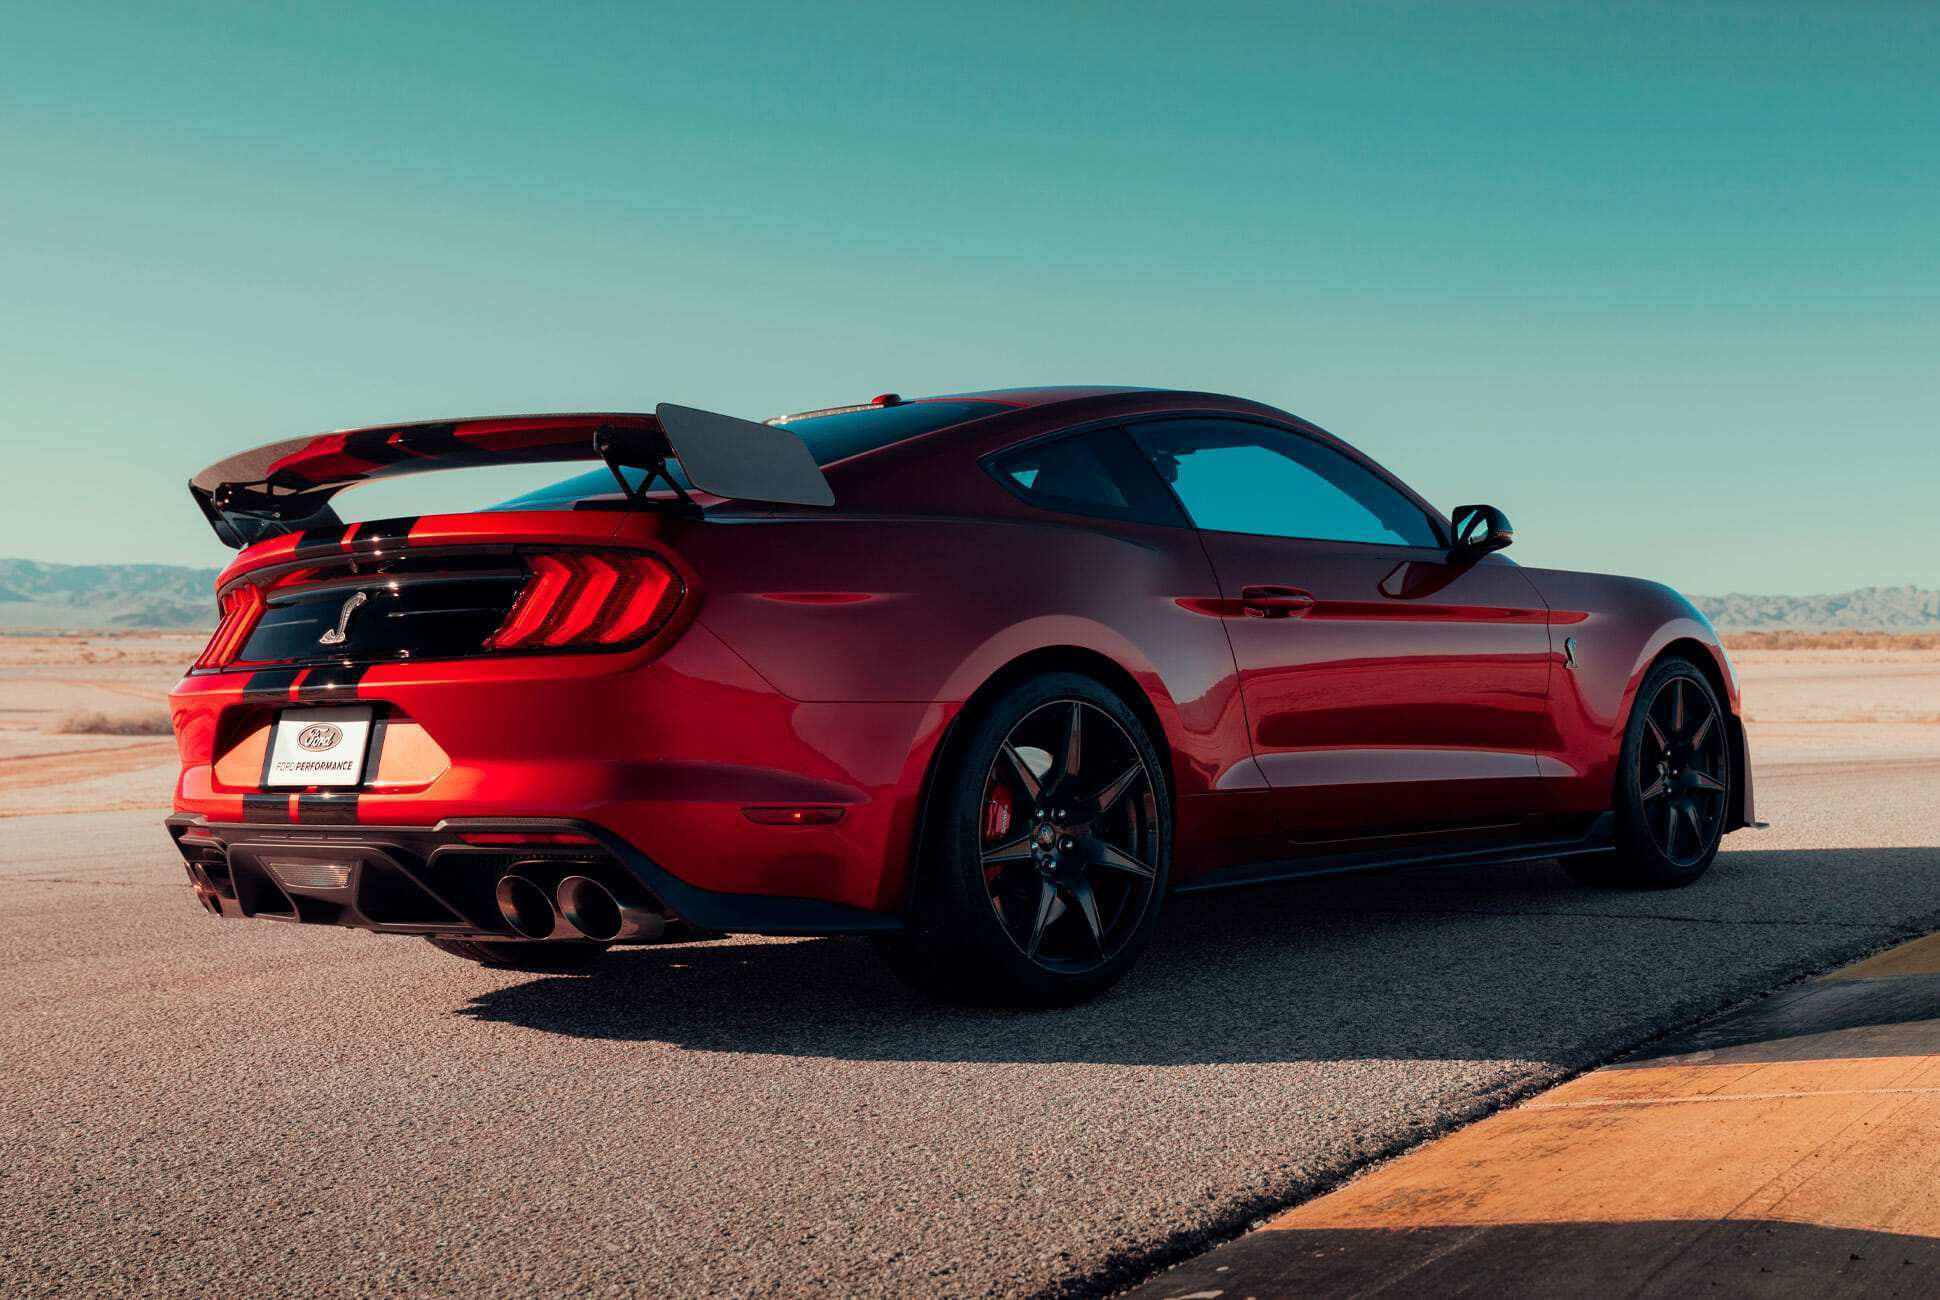 70 The Best 2020 Mustang Gt500 Price